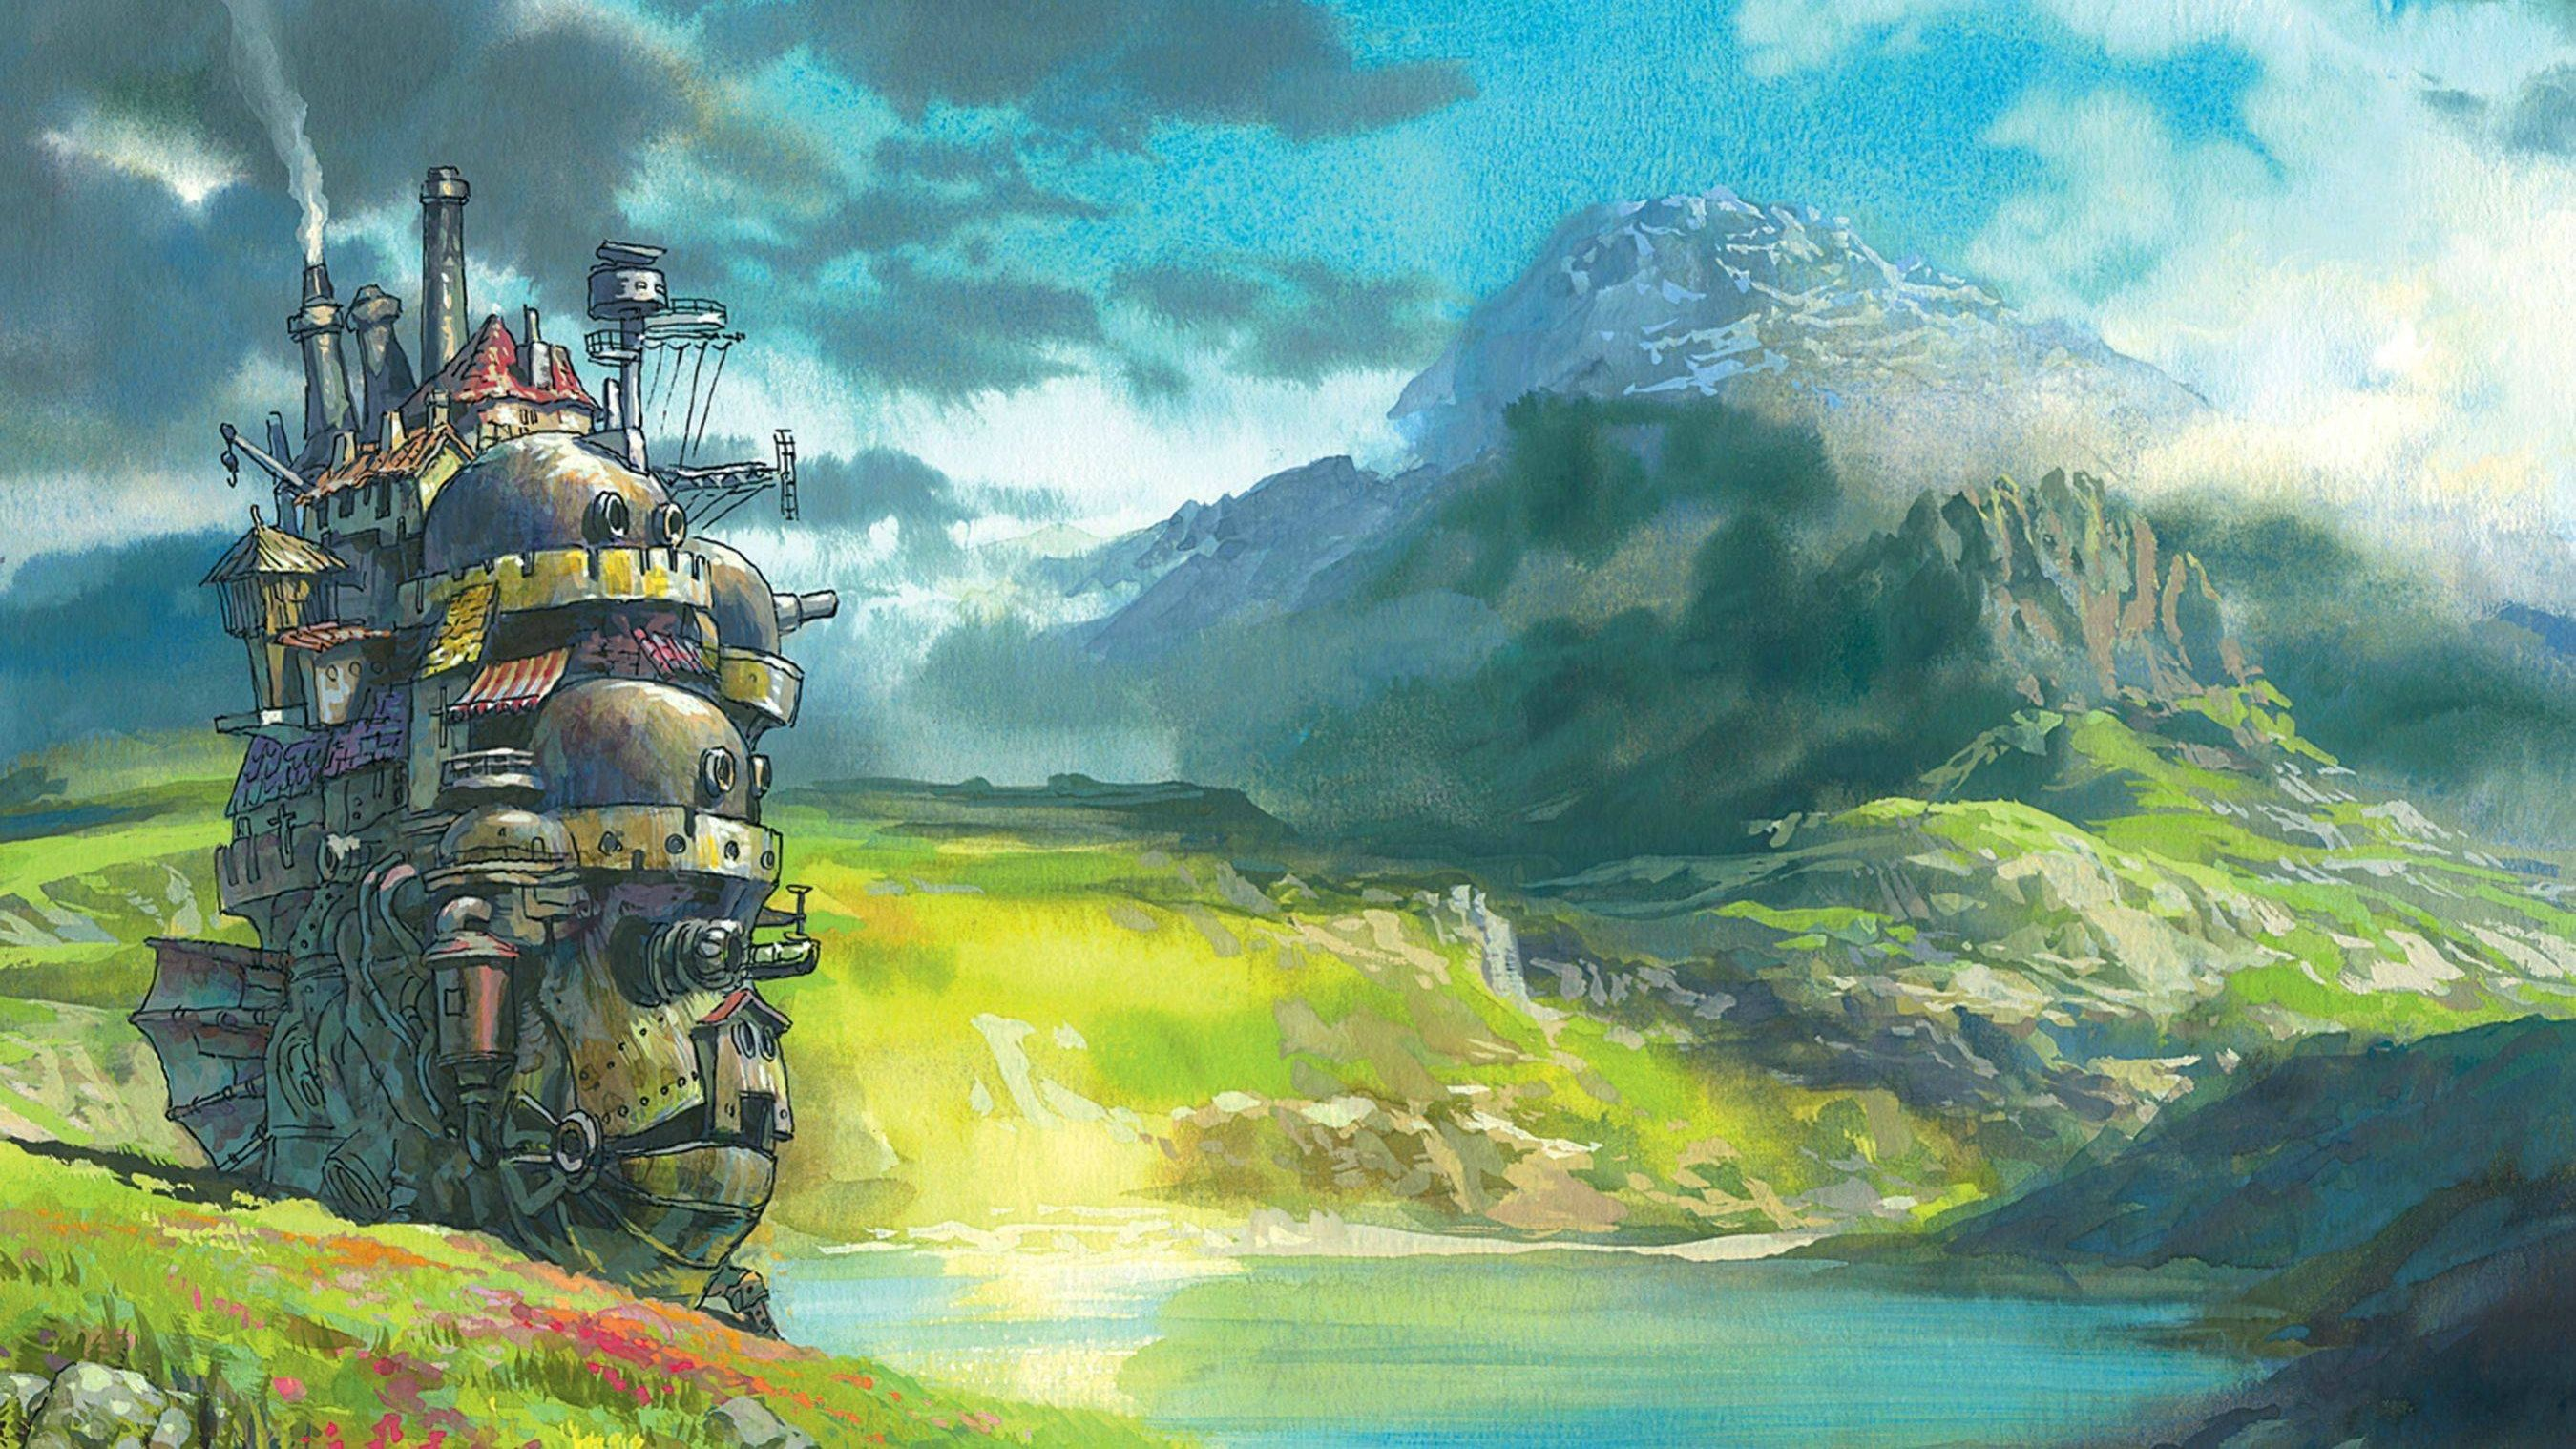 Howl S Moving Castle Computer Wallpapers Desktop Backgrounds 2699x1518 Id 325547 Howls Moving Castle Wallpaper Howls Moving Castle Art Howls Moving Castle